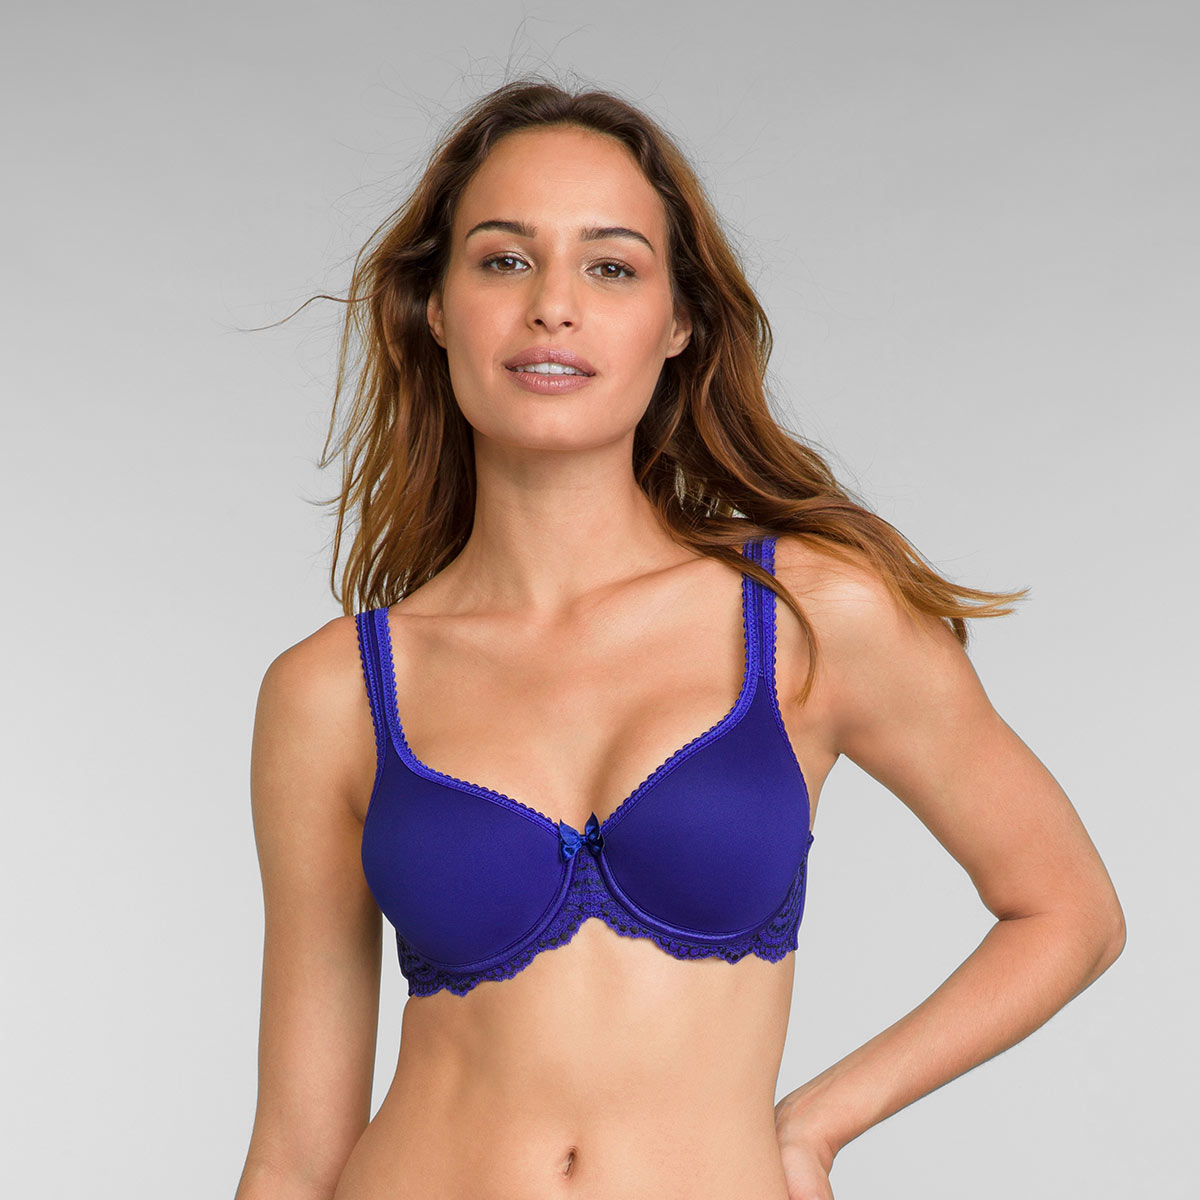 Full Cup Spacer Bra in Intense Blue Flower Elegance, , PLAYTEX